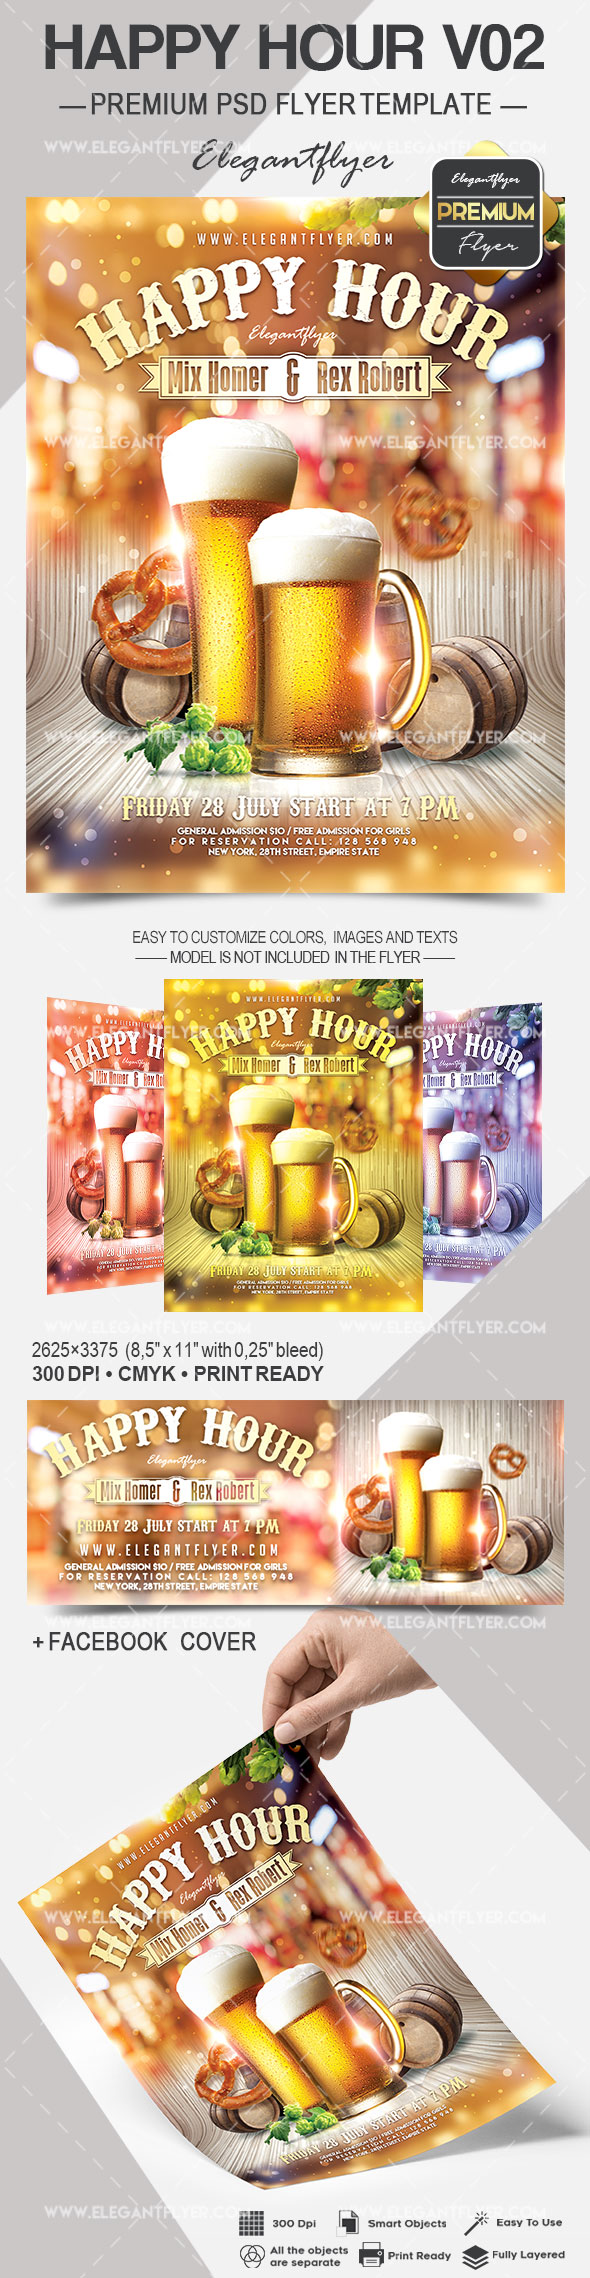 Happy Hour V02 – Flyer PSD Template + Facebook Cover